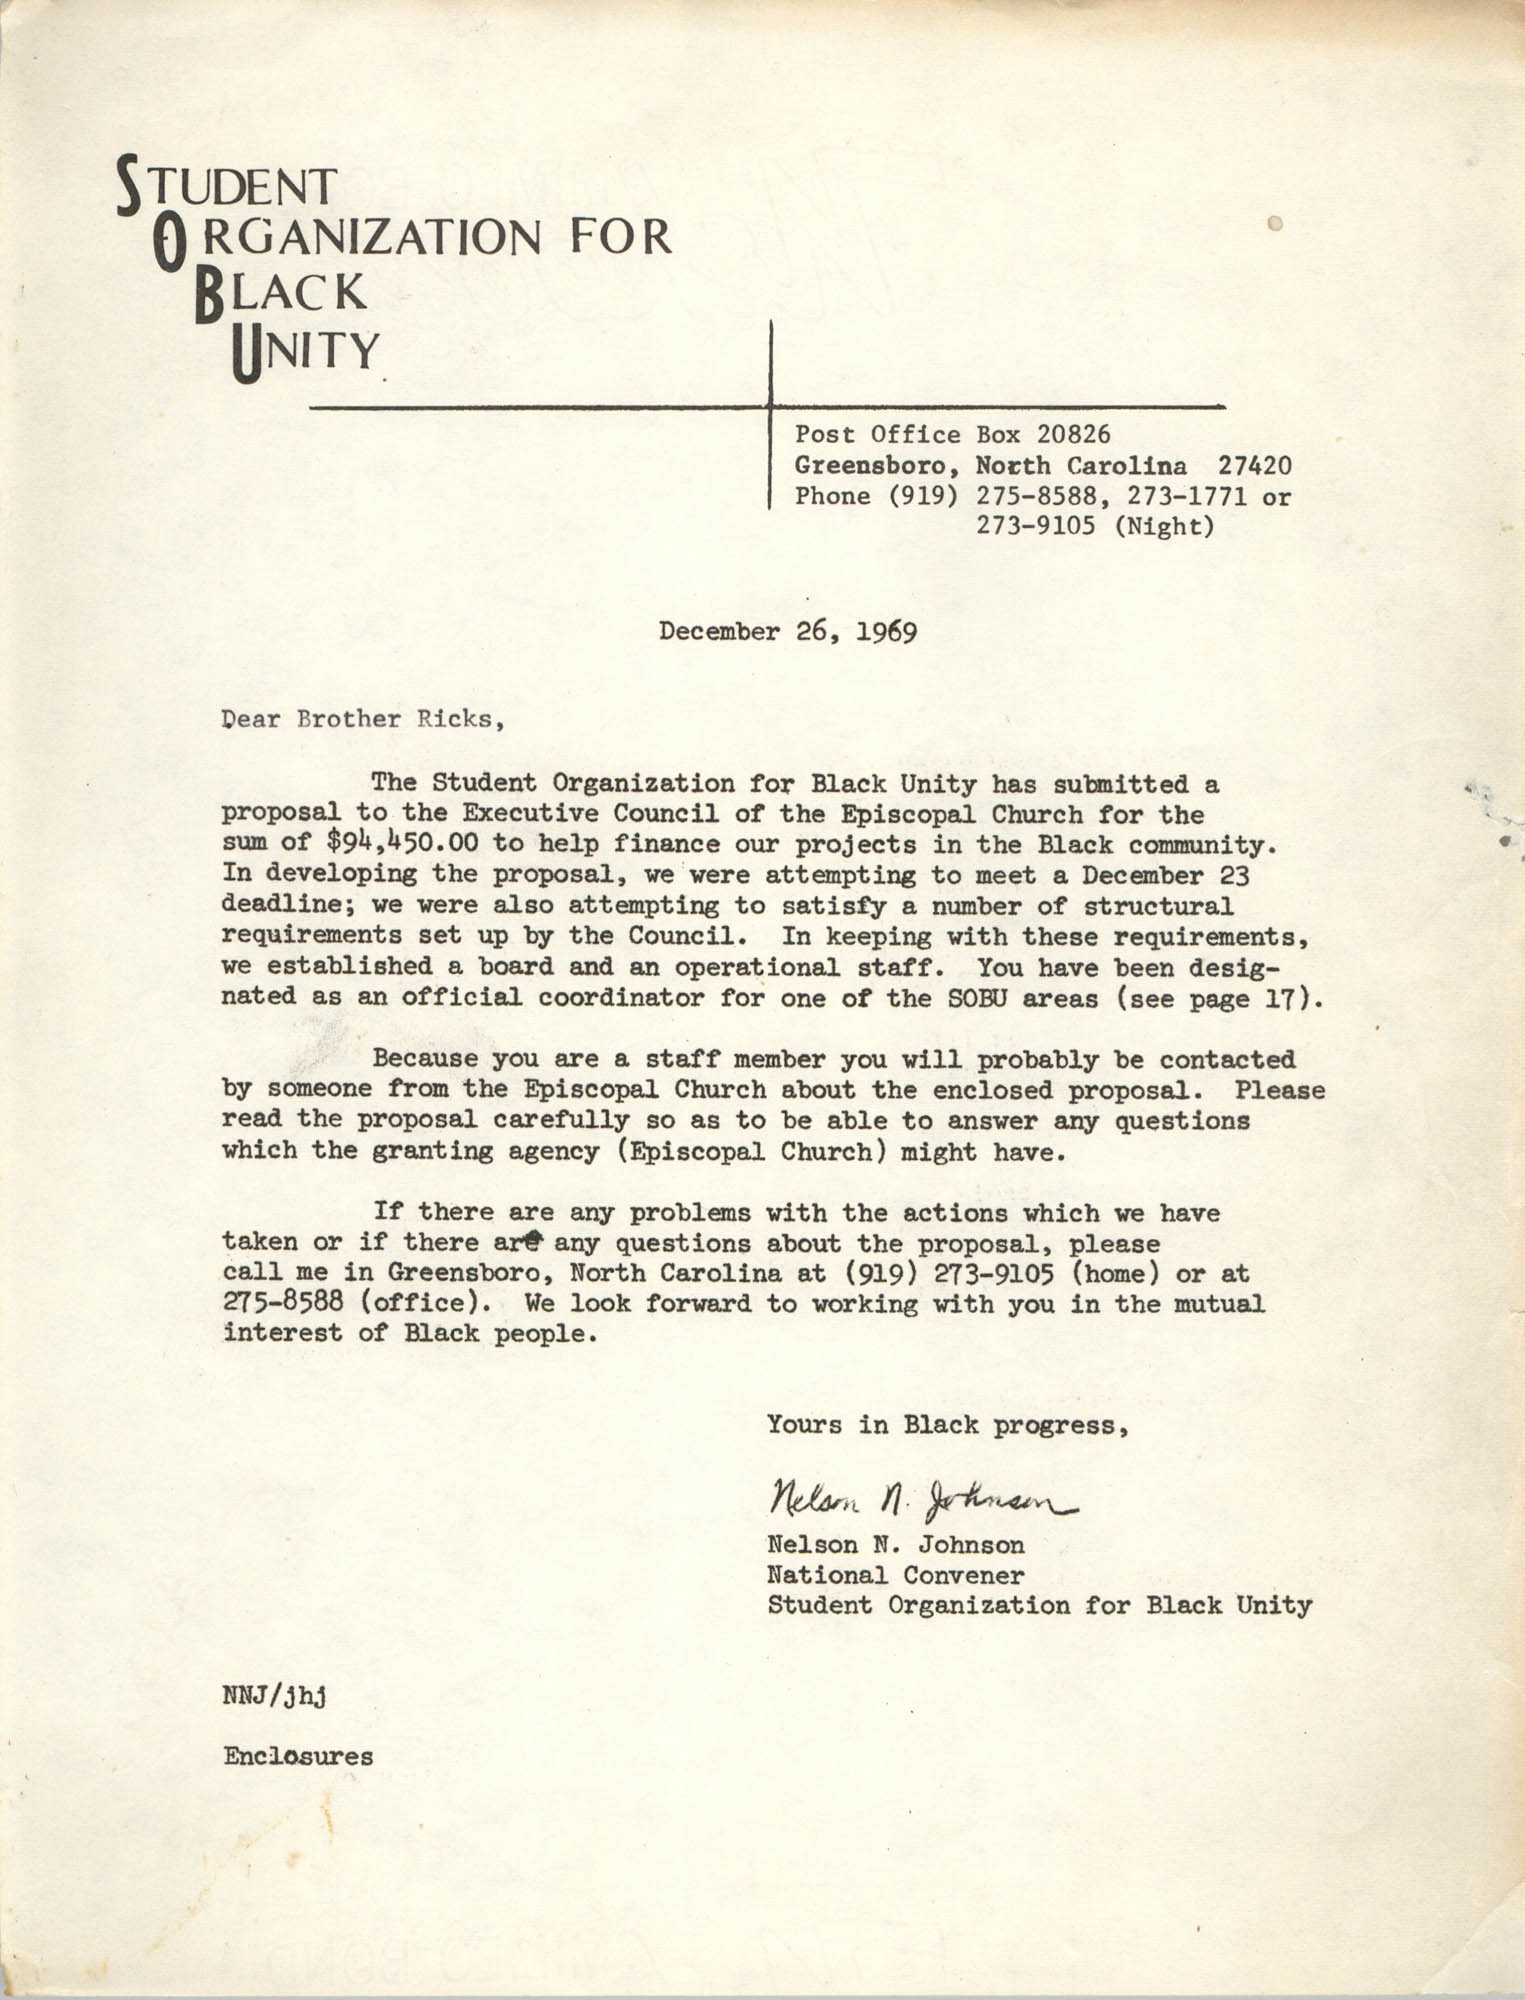 Letter from Nelson N. Johnson, December 26, 1969